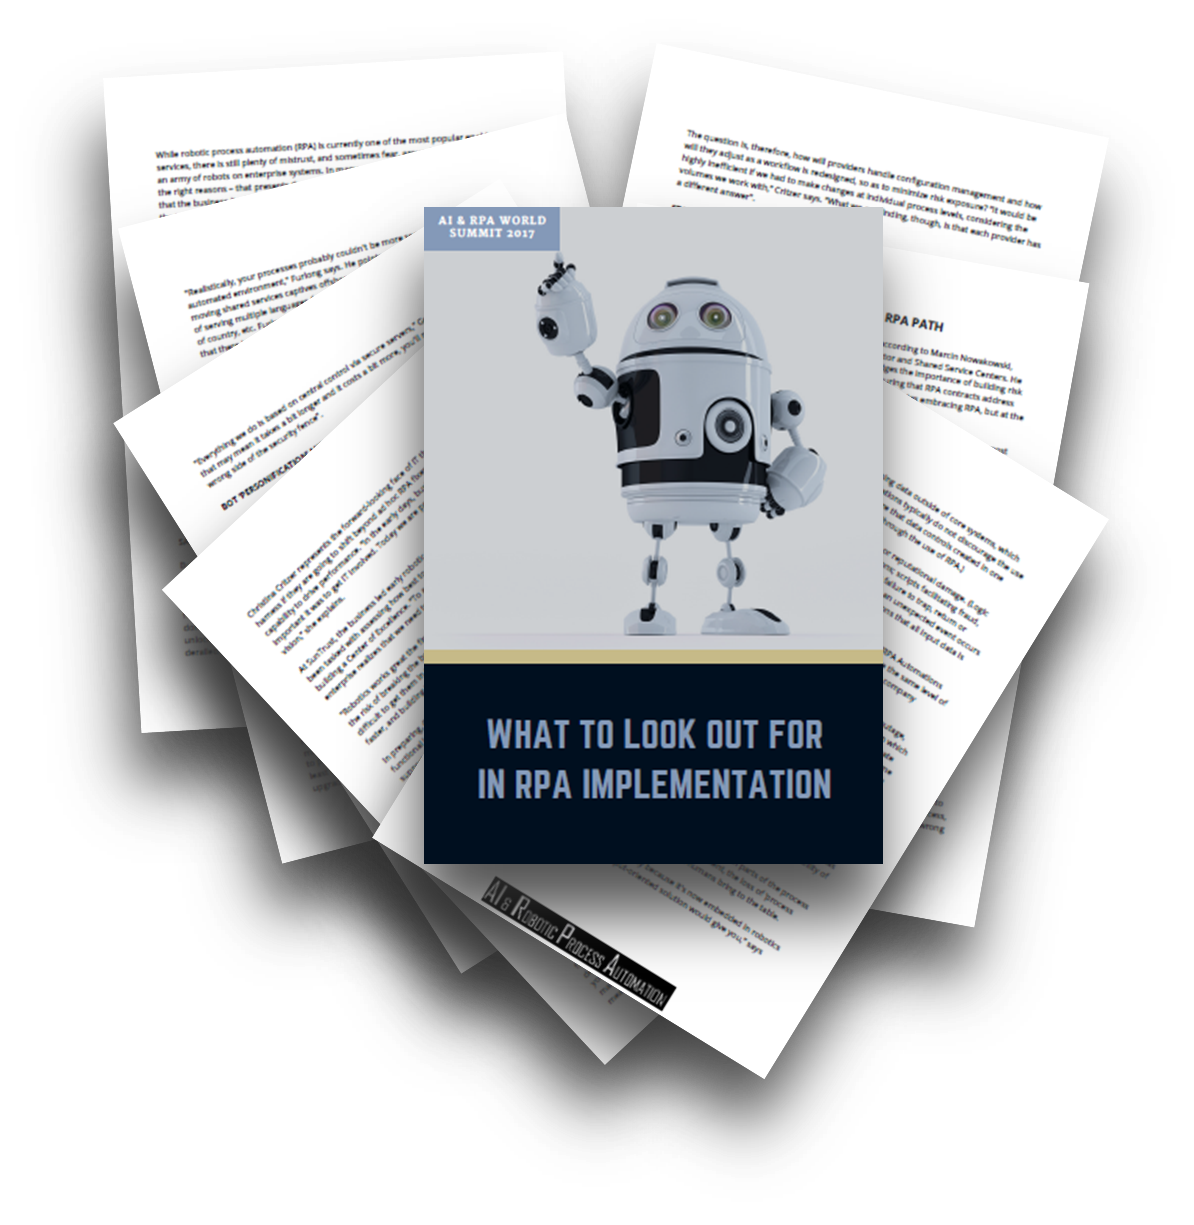 What to look out for in RPA implementation